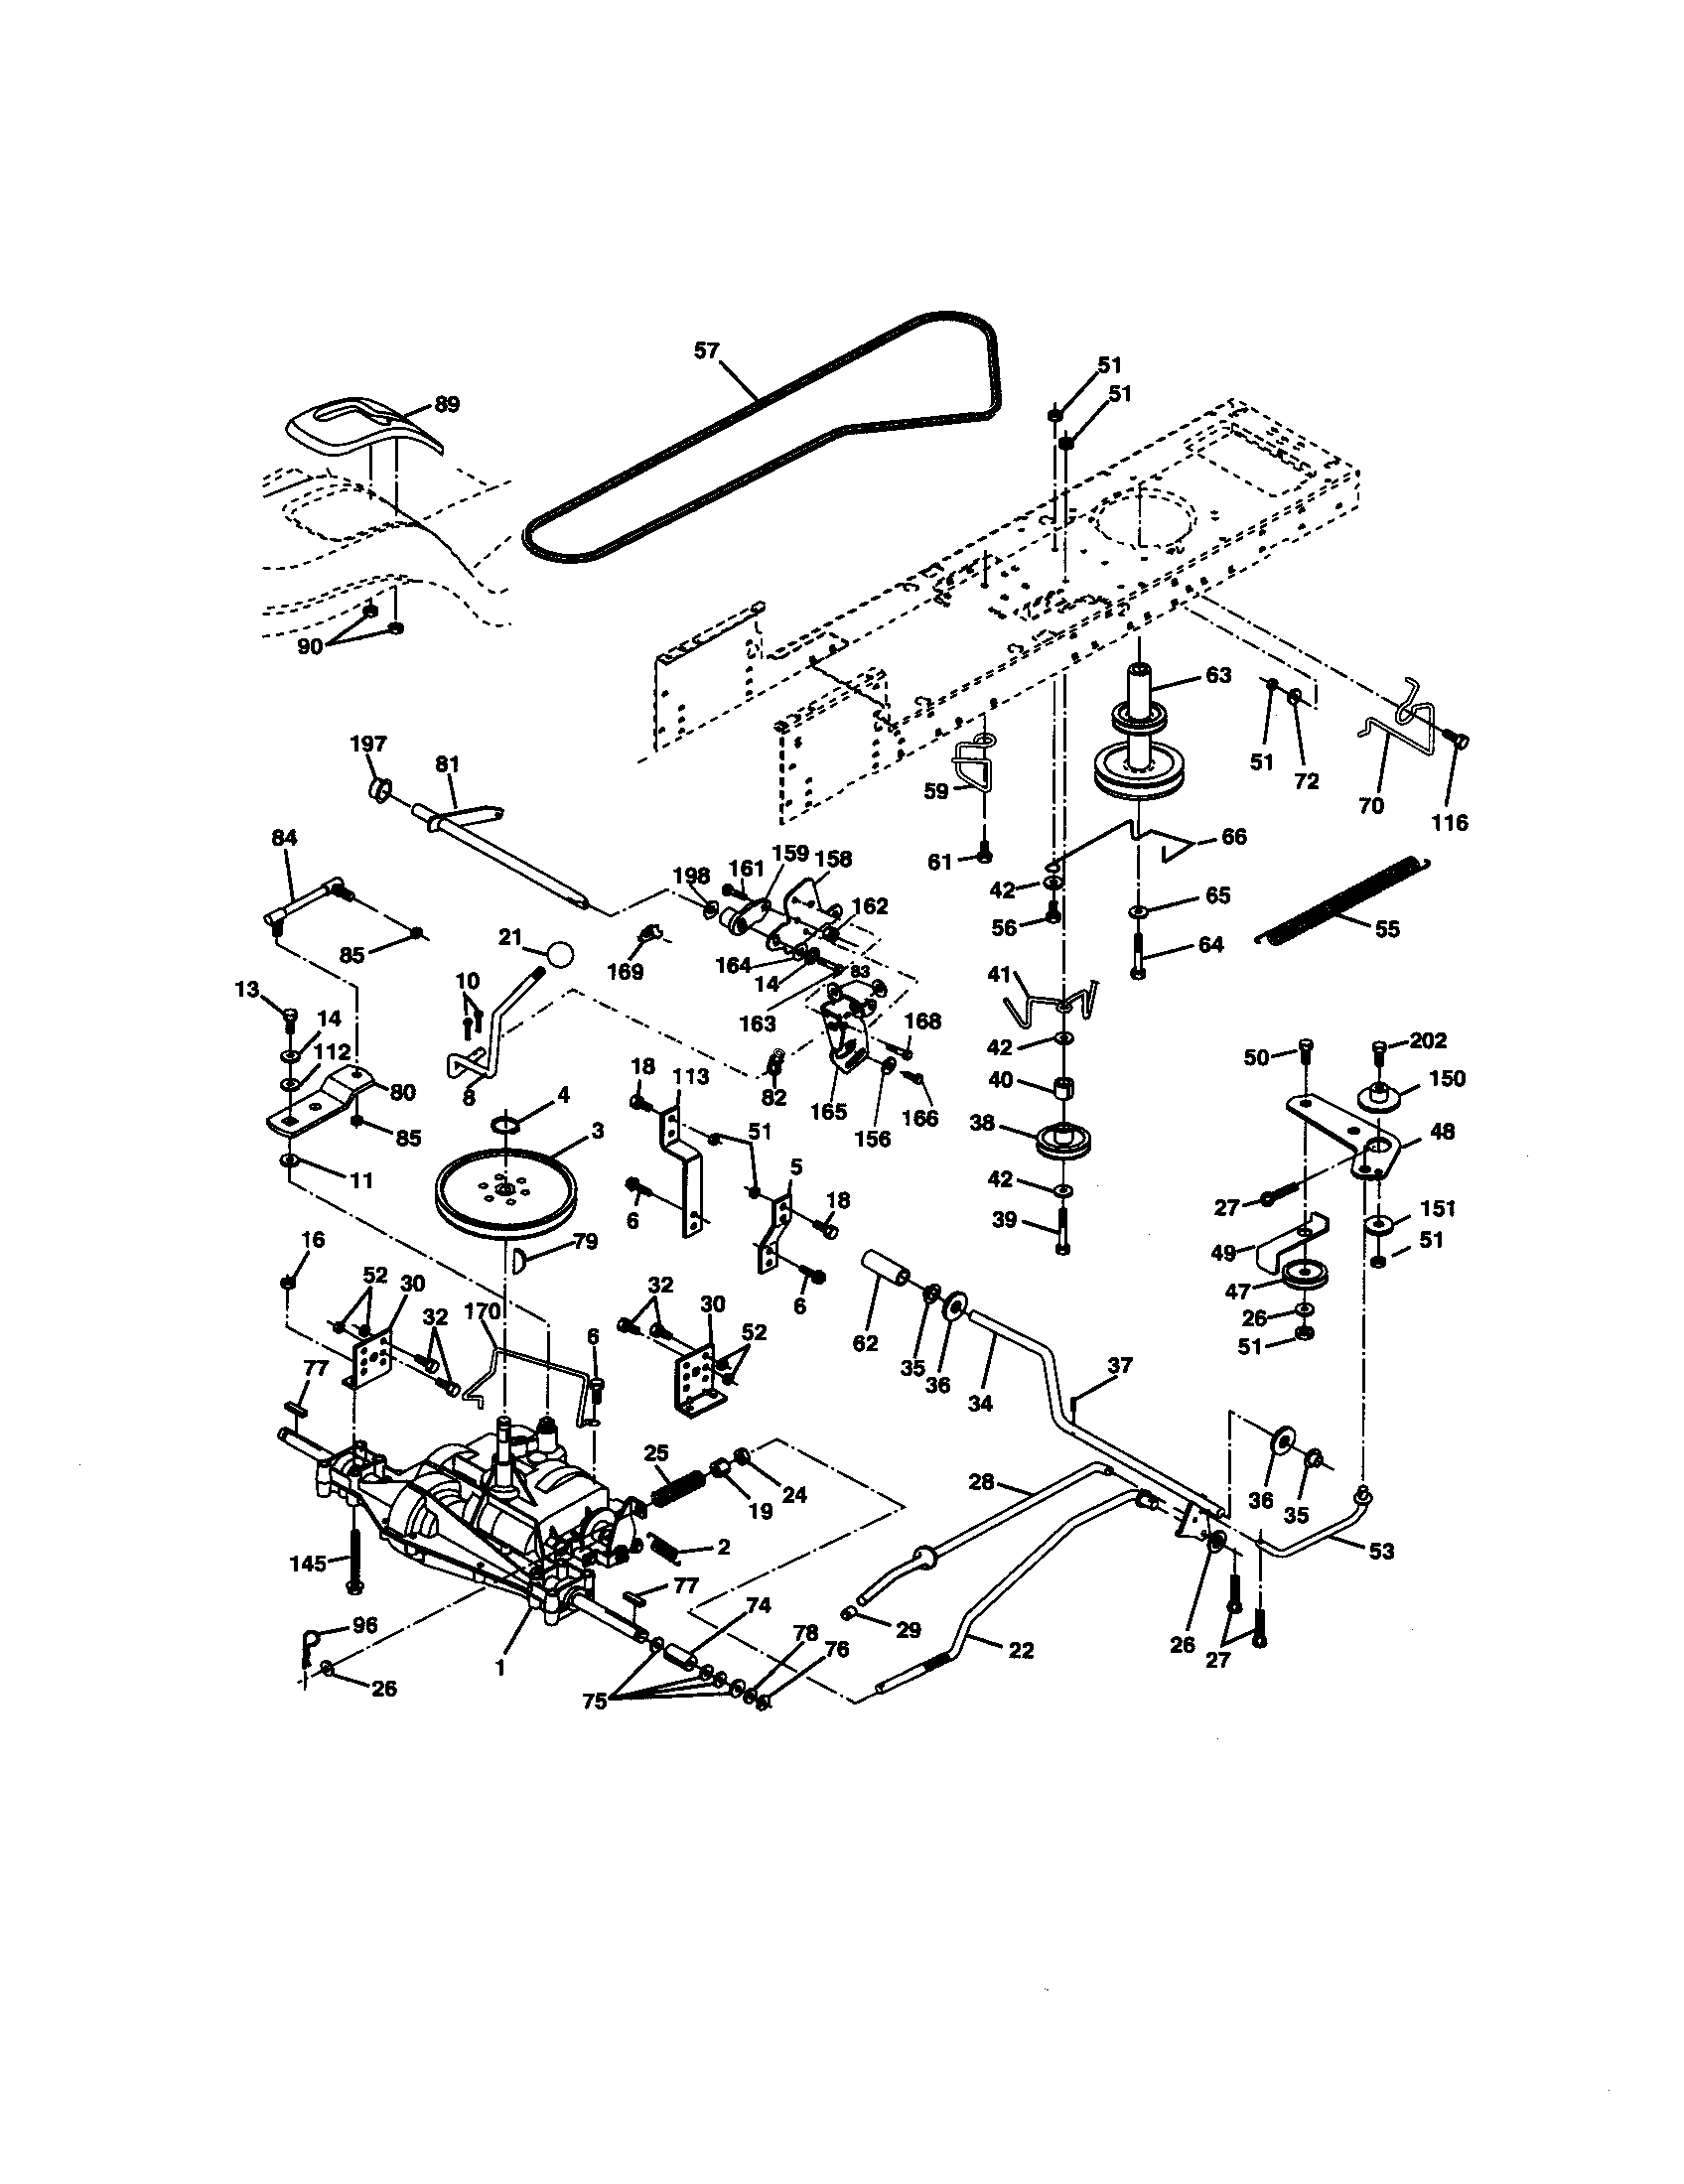 system diagram and parts list for craftsman ridingmowertractorparts wiring diagram today [ 1696 x 2200 Pixel ]